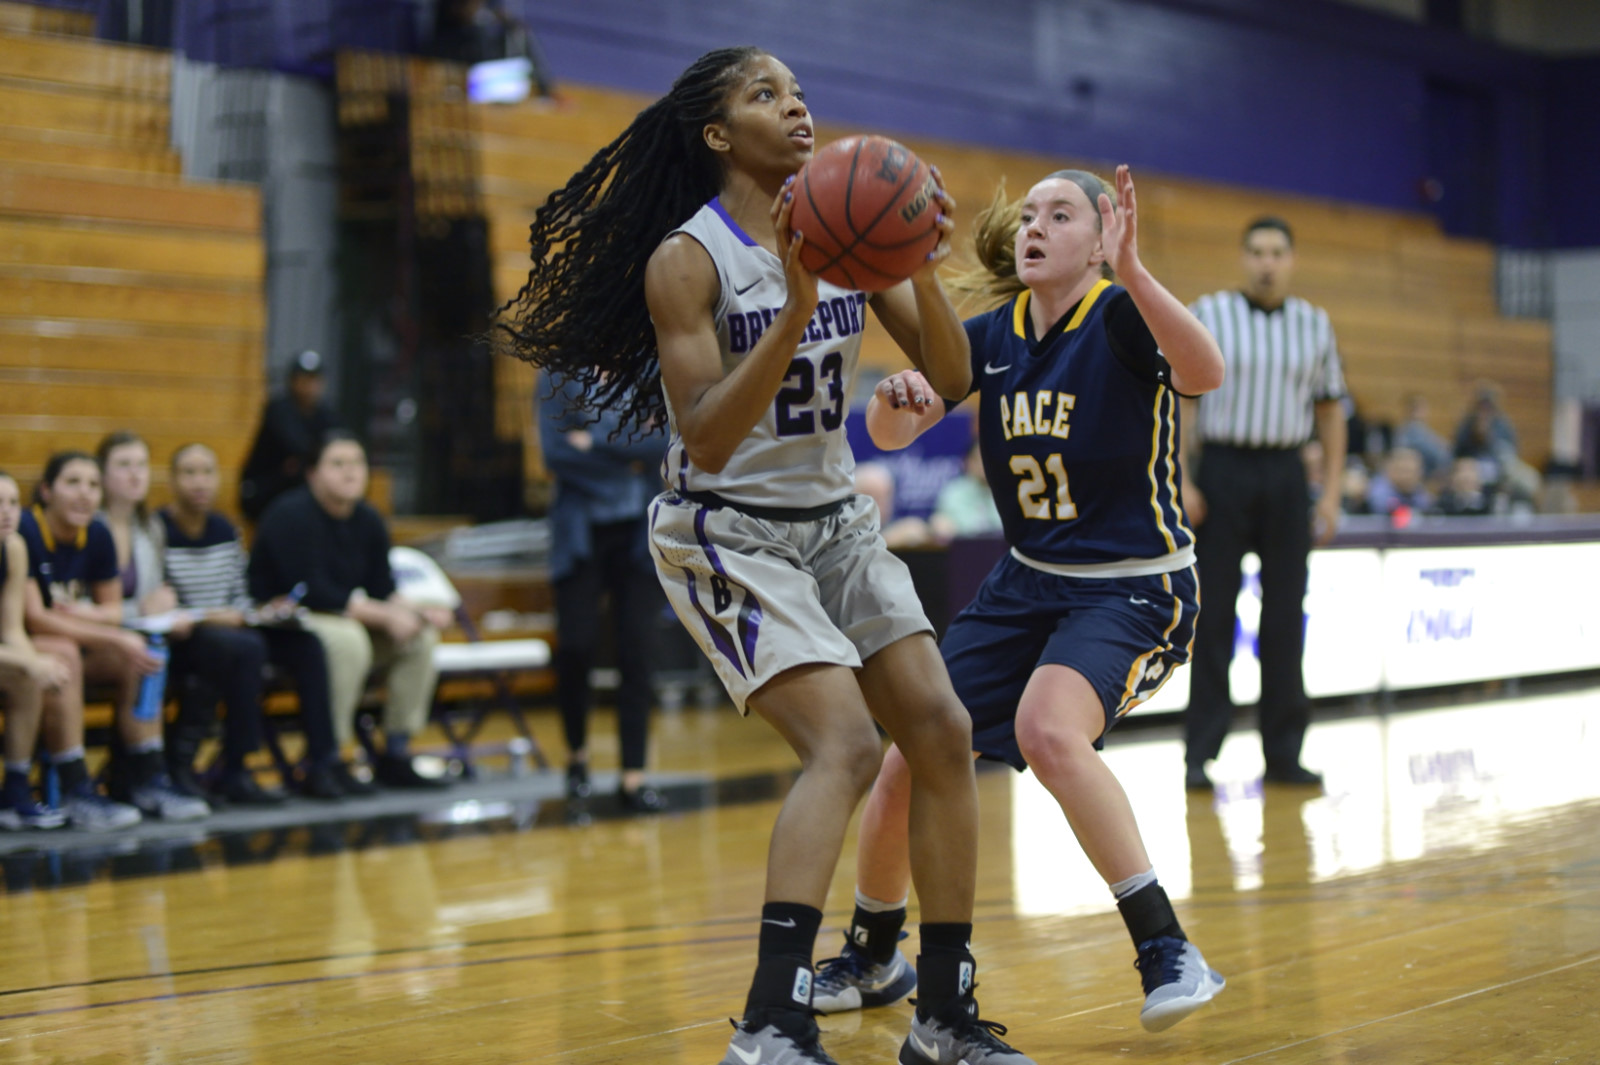 Three Players Notch Double-Doubles As UB Women Stop UDC, 76-56